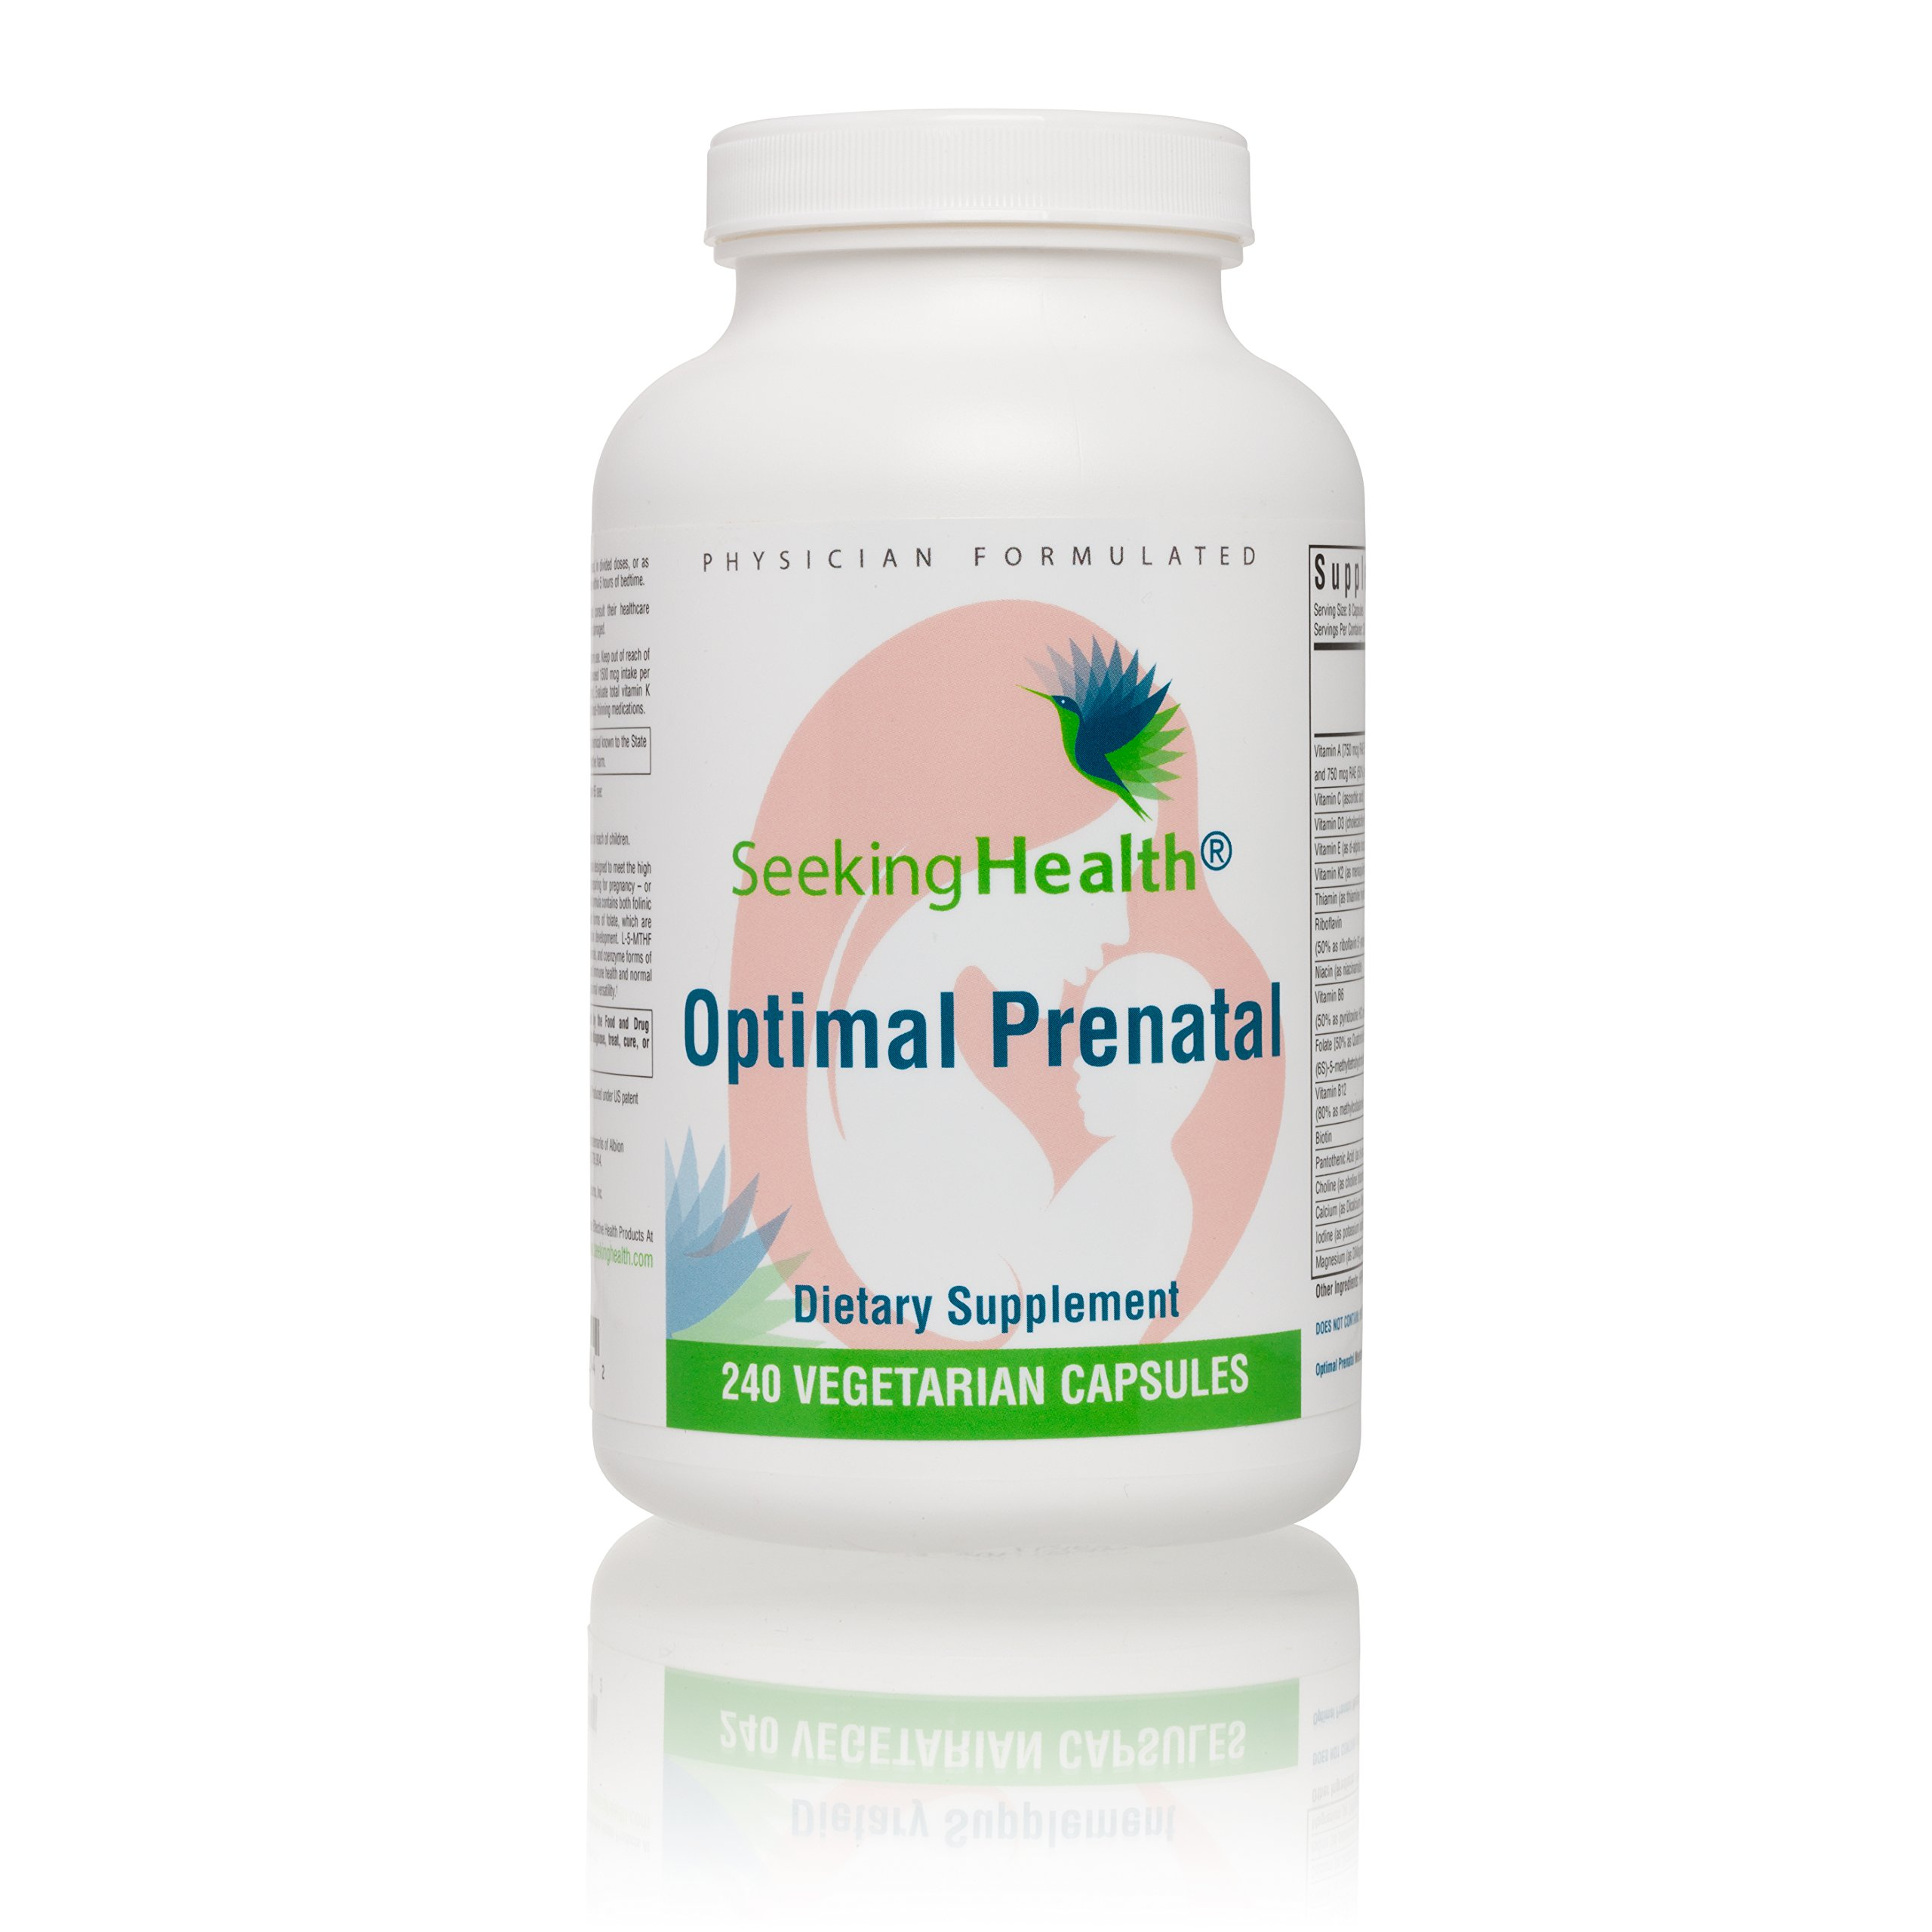 Seeking Health | Optimal Prenatal | Prenatal Vitamins for Women | 240 Vegetarian Prenatal Vitamins